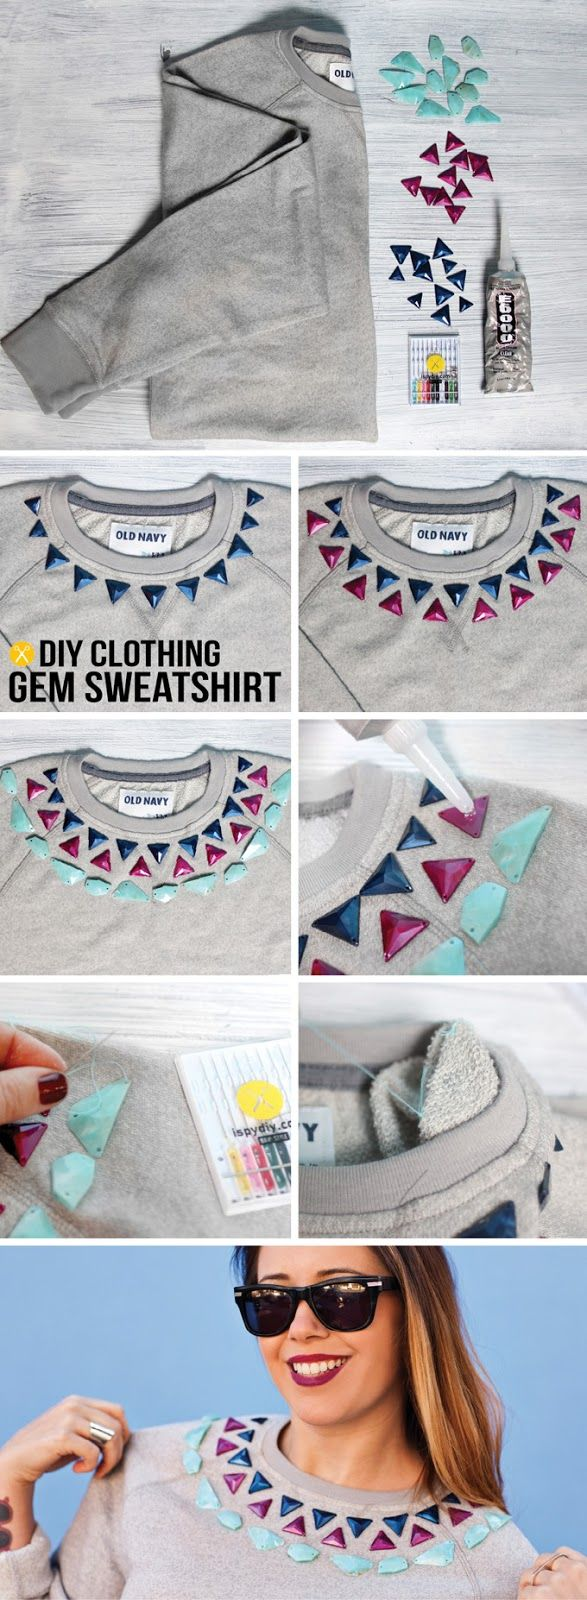 DIY Fashion: This is such a neat idea for pain and simple sweaters or shirts :) Fun way to embellish sweatshirts and tees!